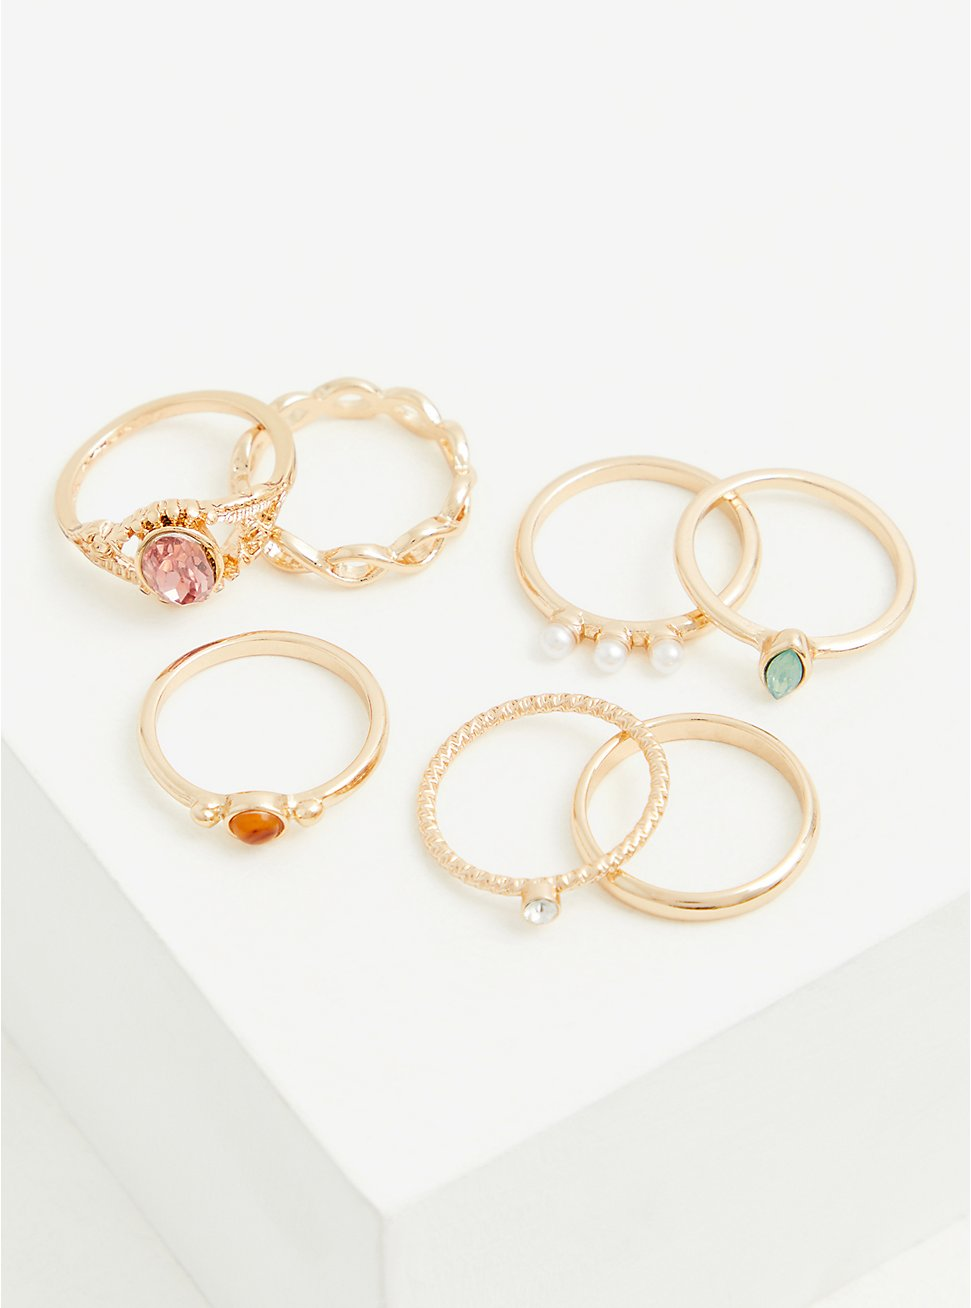 Blush and Faux Pearl Ring Set - Set of 7, MULTI, hi-res